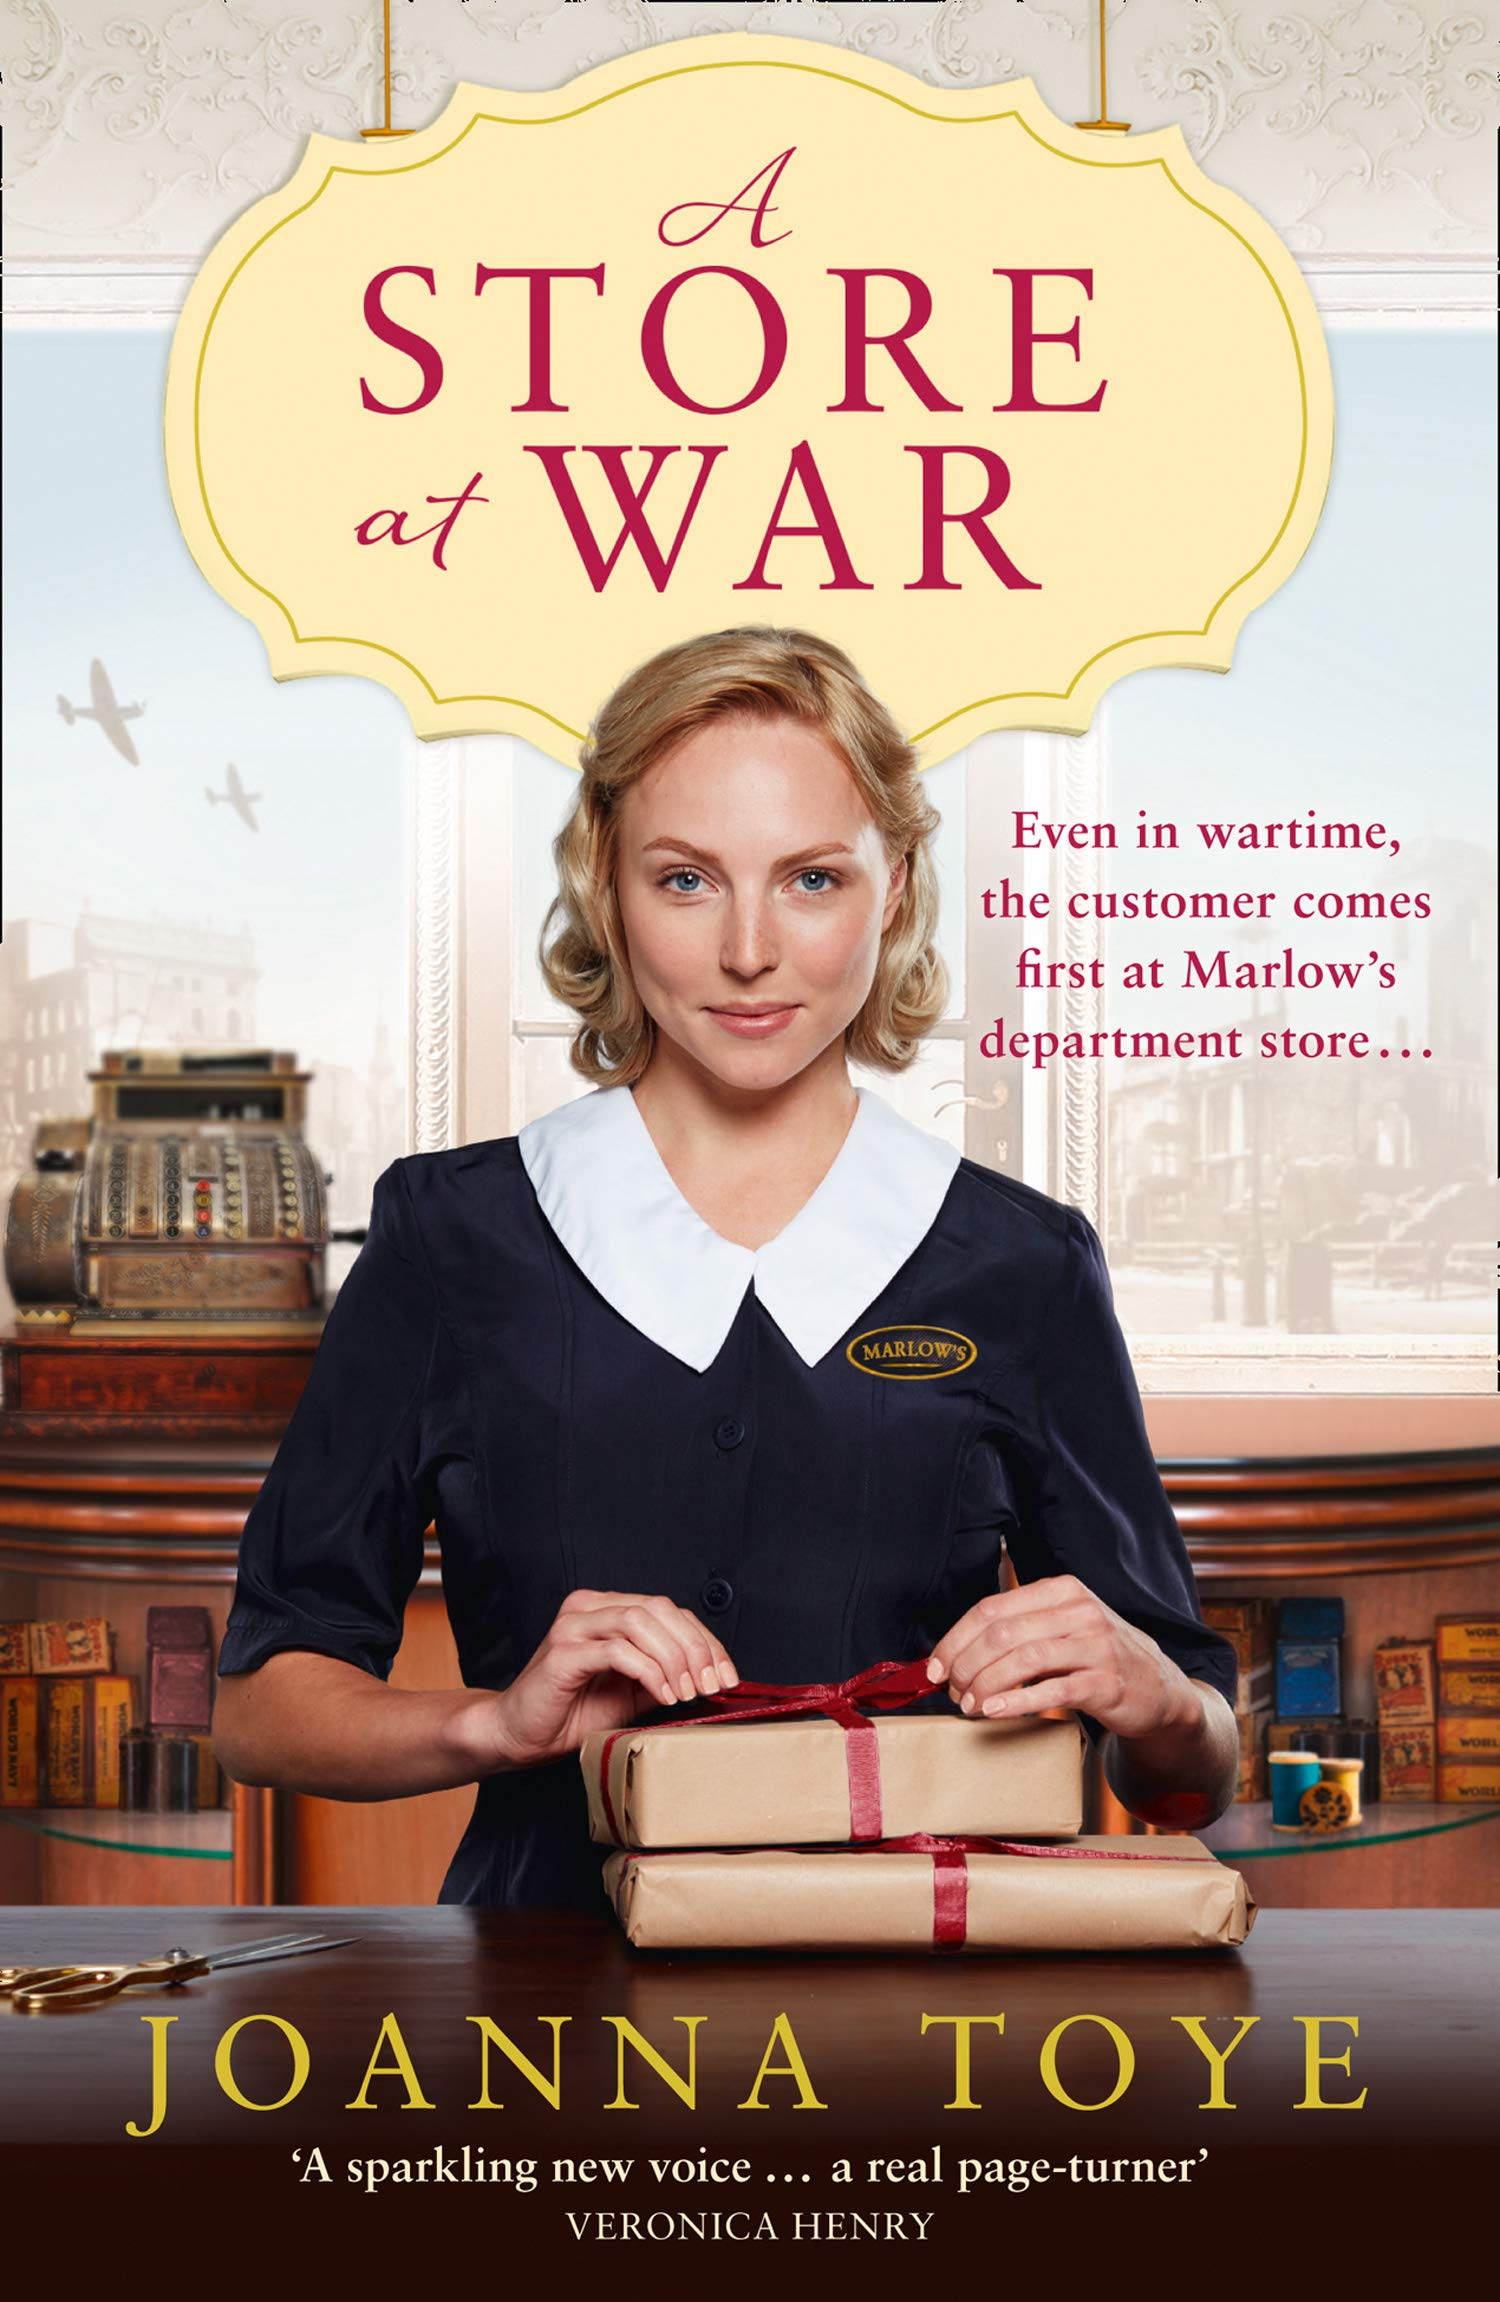 A Store at War: The First Book in a Gripping New Wartime Drama Series: Book  1: Amazon.co.uk: Toye, Joanna: 9780008298234: Books